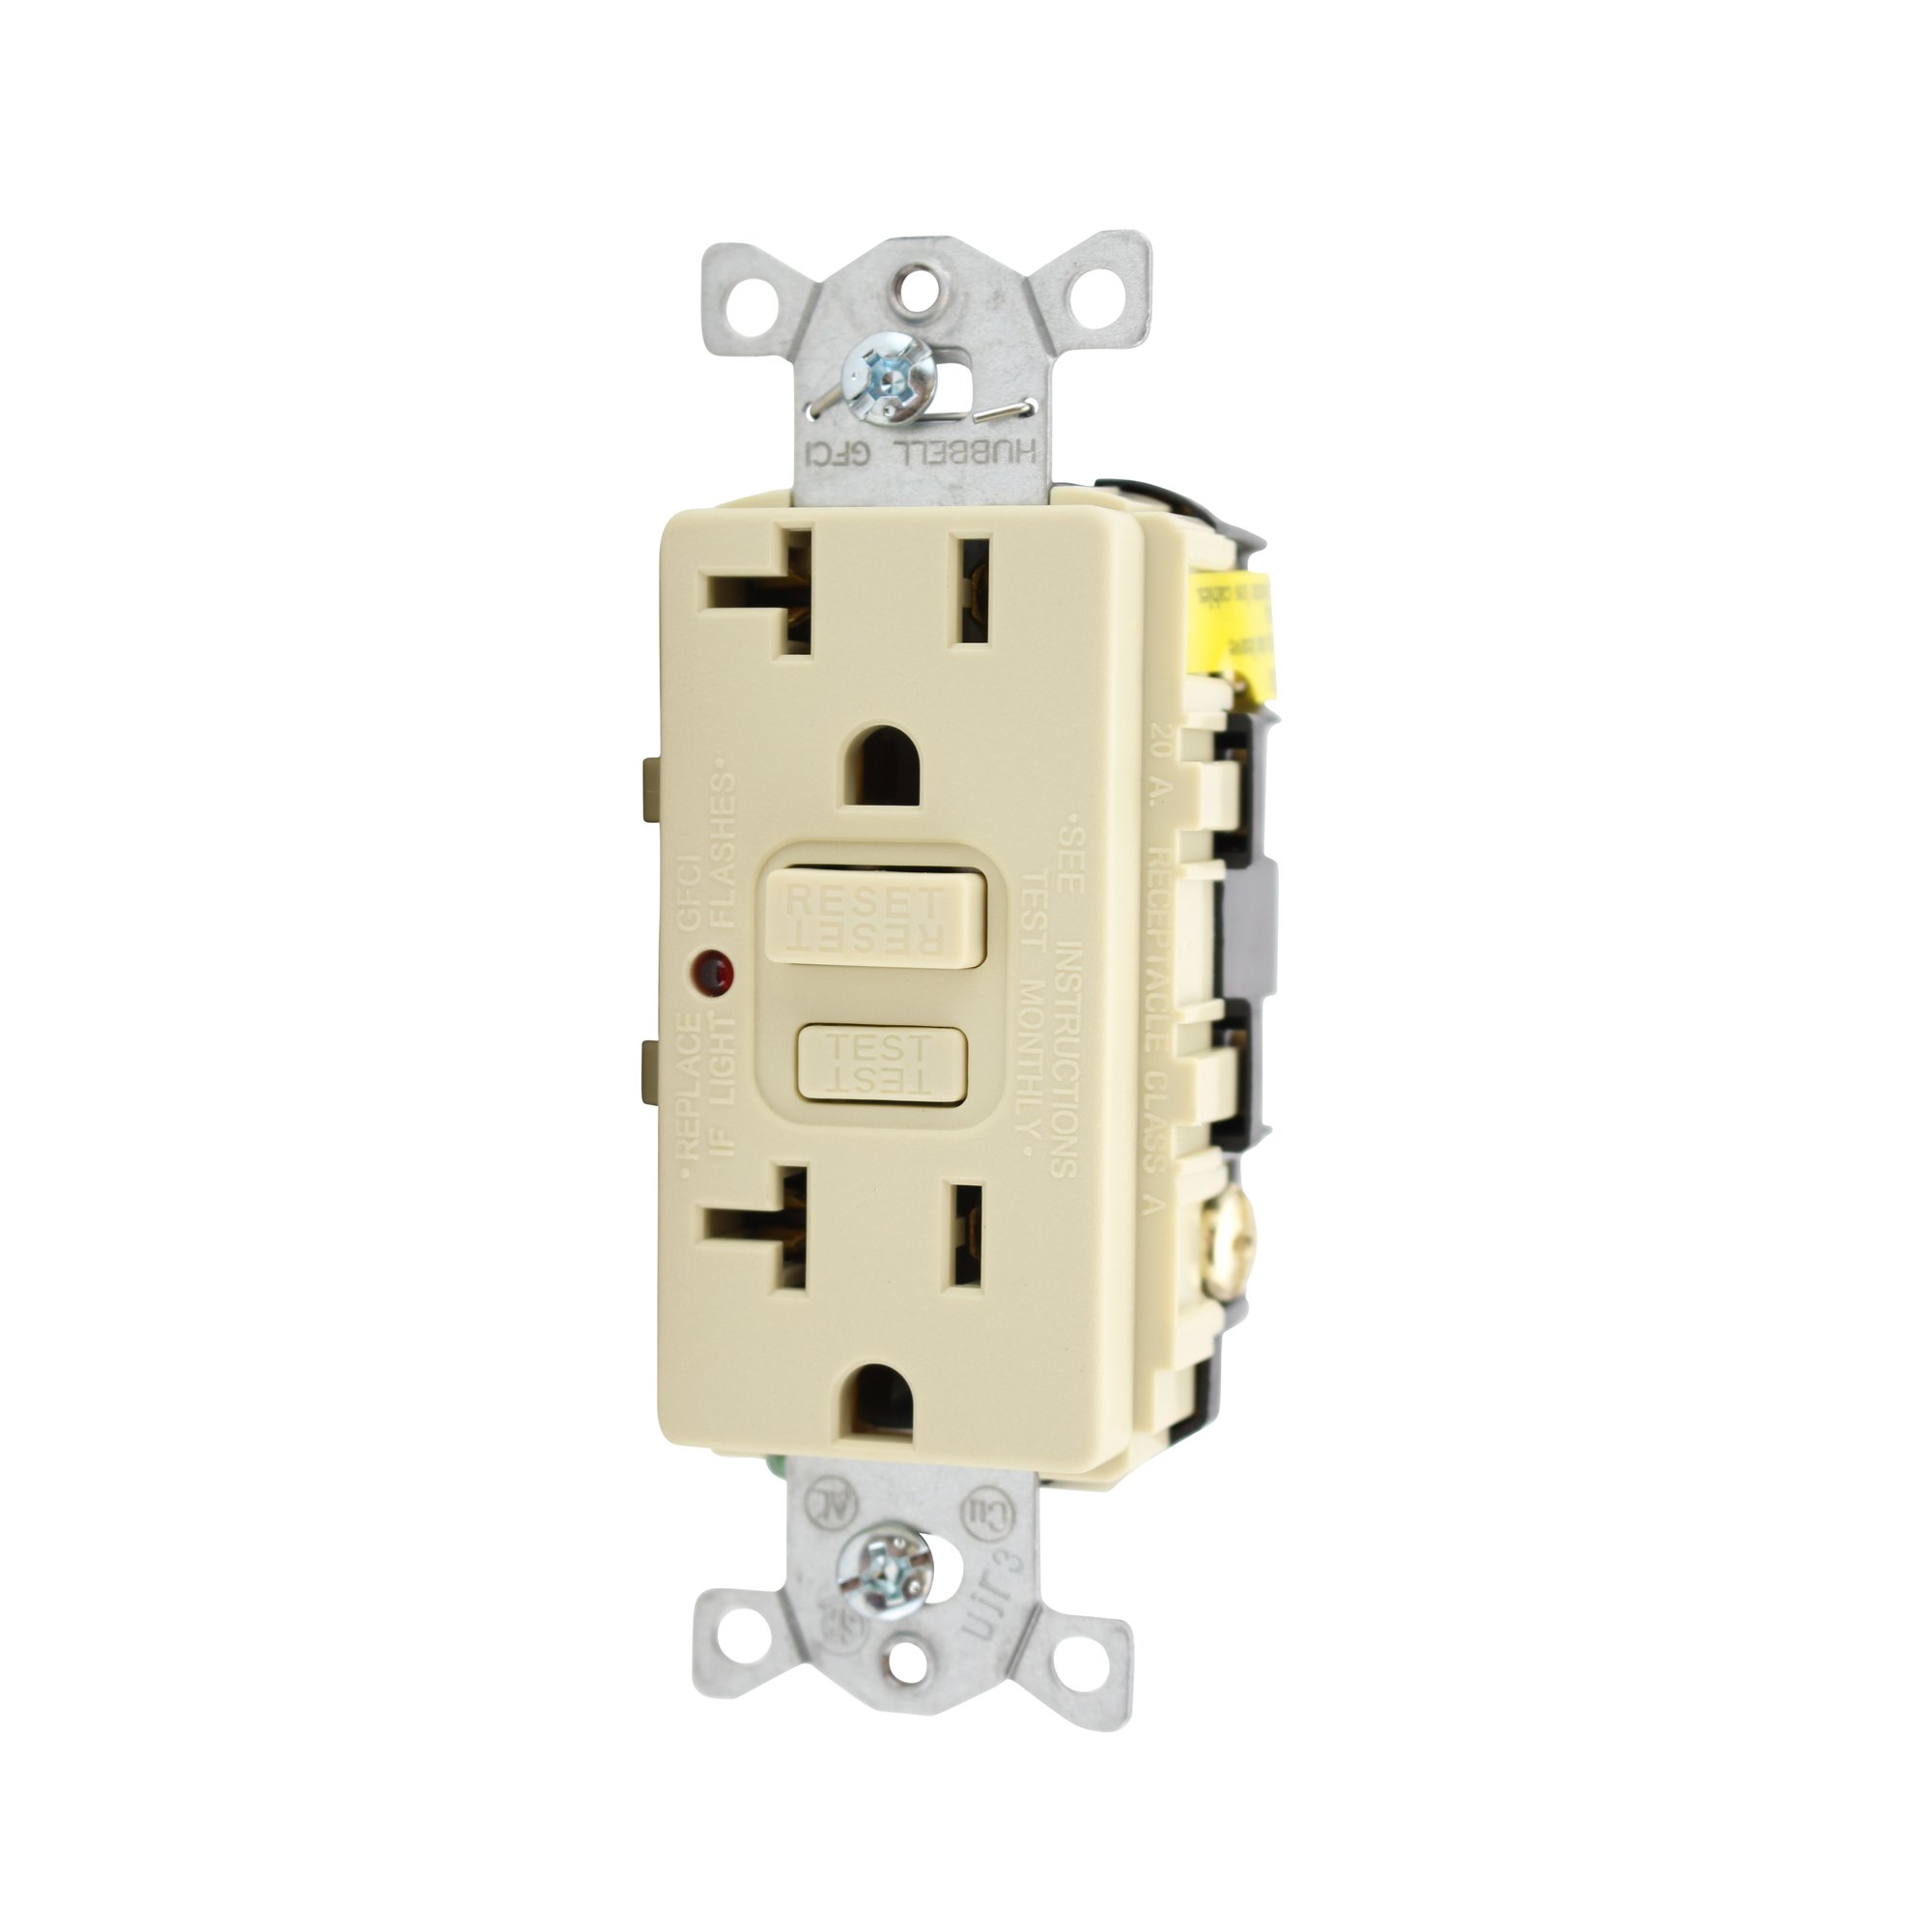 Hubbell Wiring Systems GF20ILA Power Protection Products, Receptacles, GFCI, Commercial/Industrial Grade, 20 Amp, 125V, 2-Pole 3-Wire Grounding, 5-20R, LED Indicator, Ivory